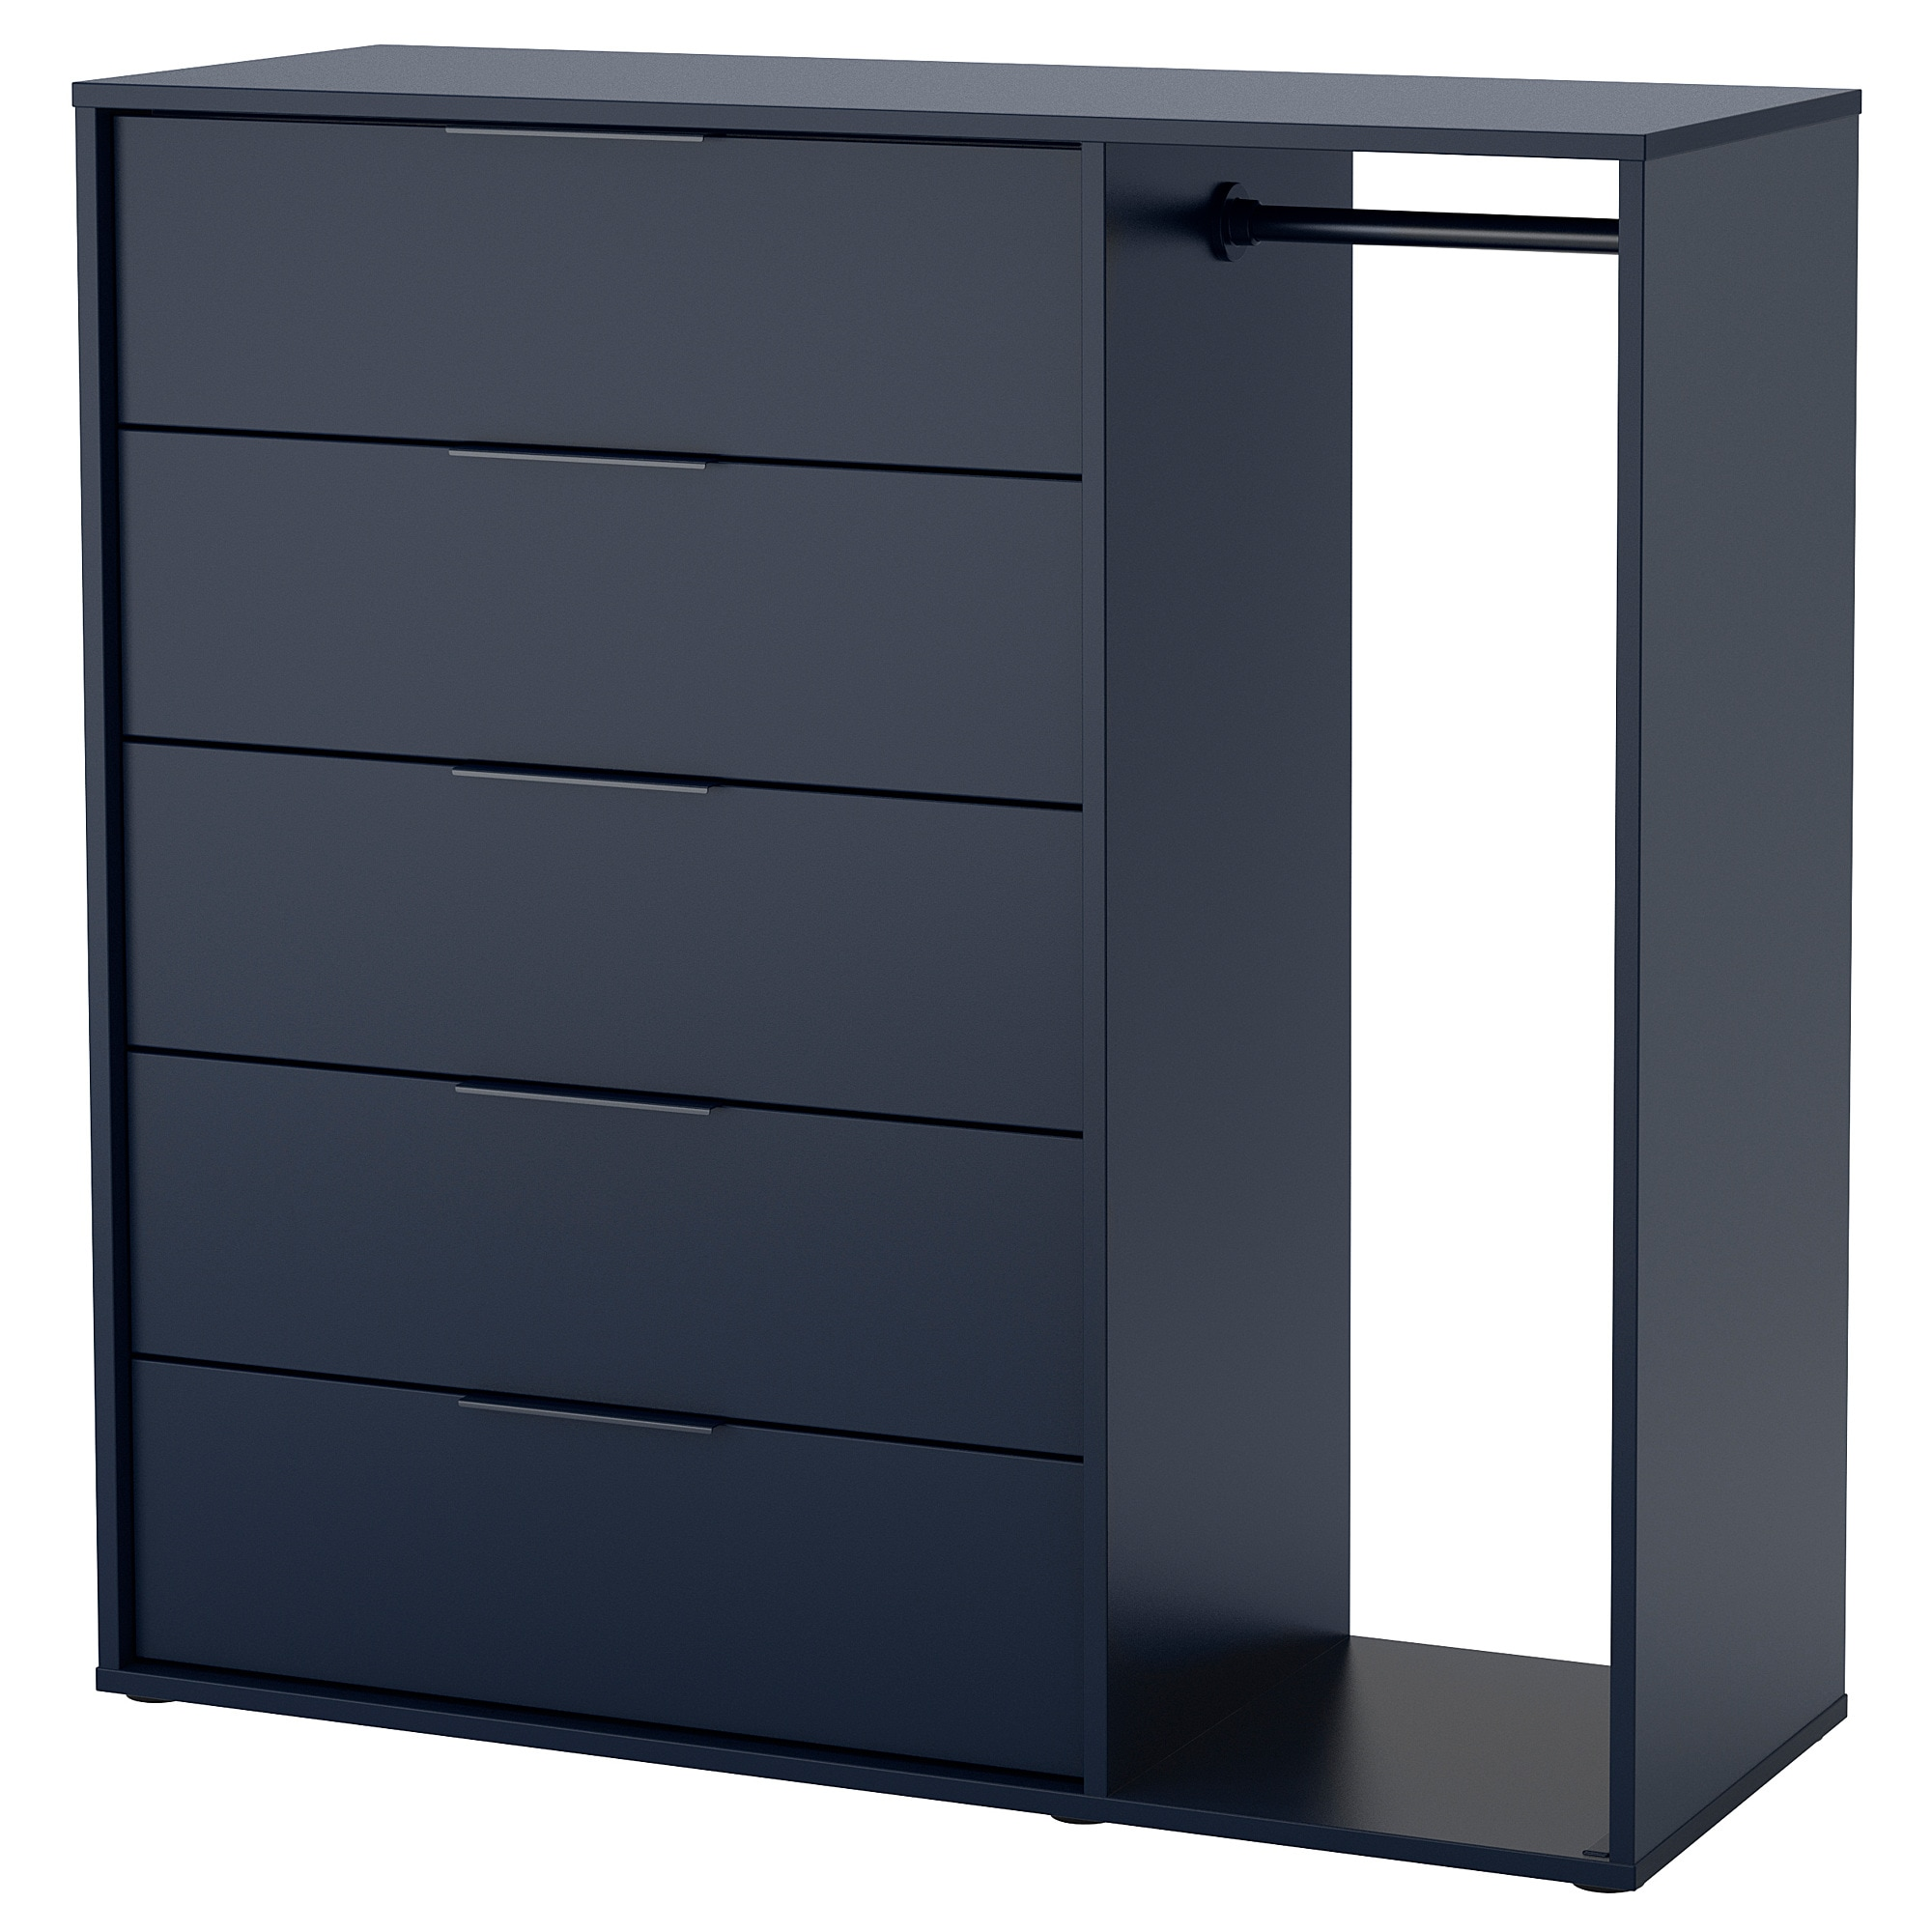 Chest Of Drawers.Chest Of Drawers With Clothes Rail Nordmela Black Blue